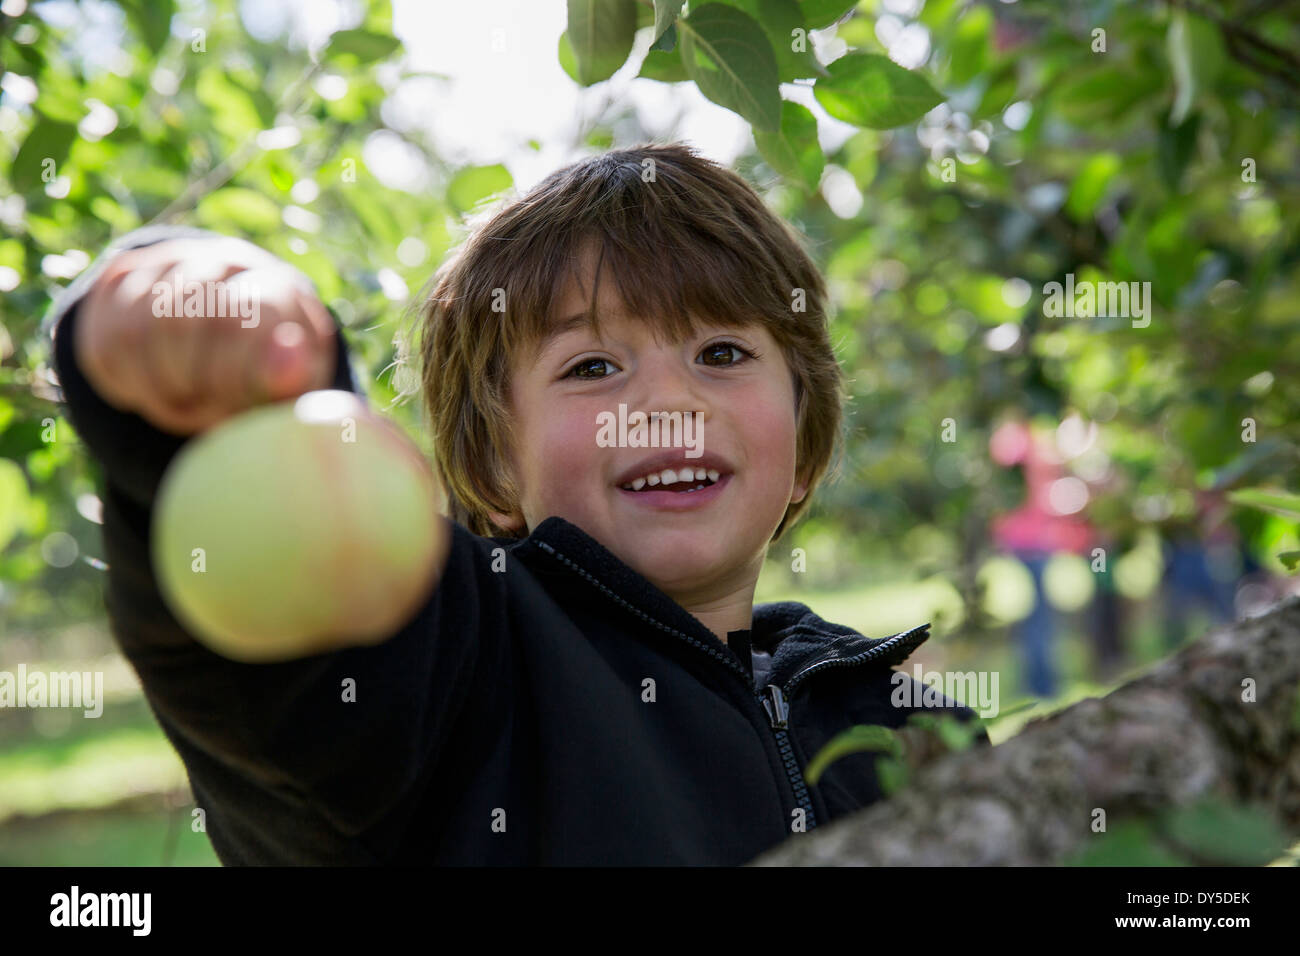 Portrait of a boy holding up freshly picked apple - Stock Image